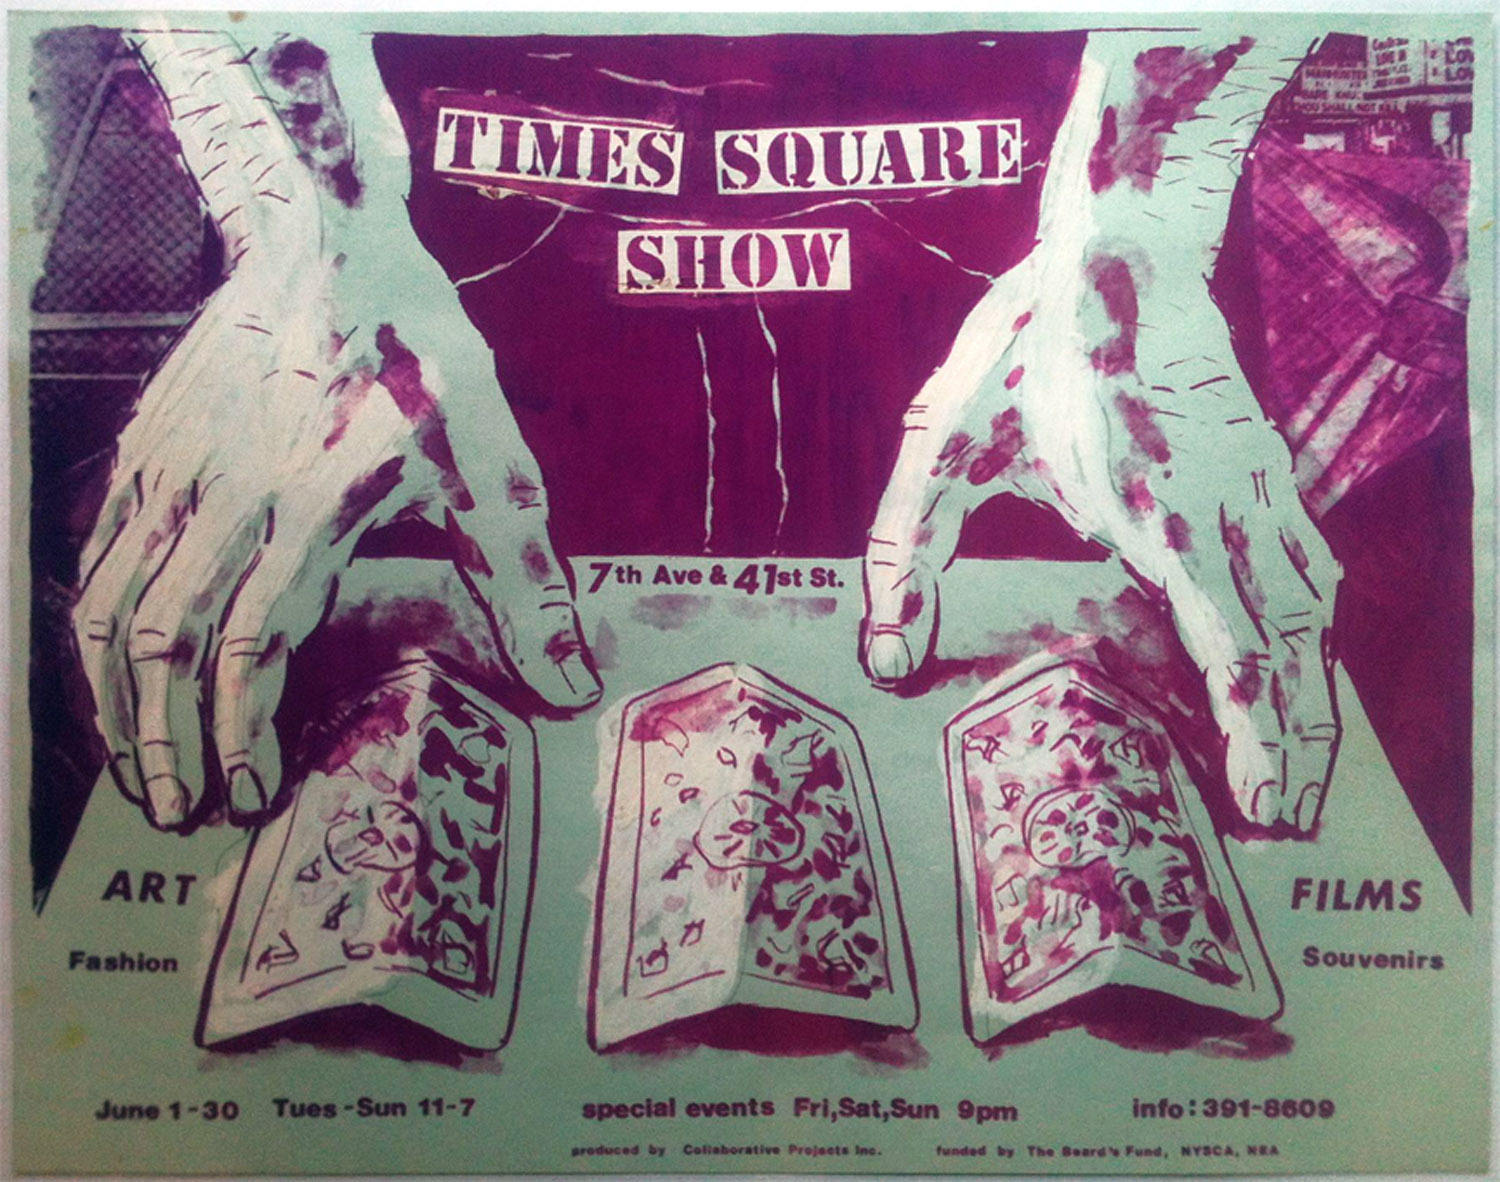 Times Square Show, Jane Dickson and Charlie Ahearn, Poster, 1980